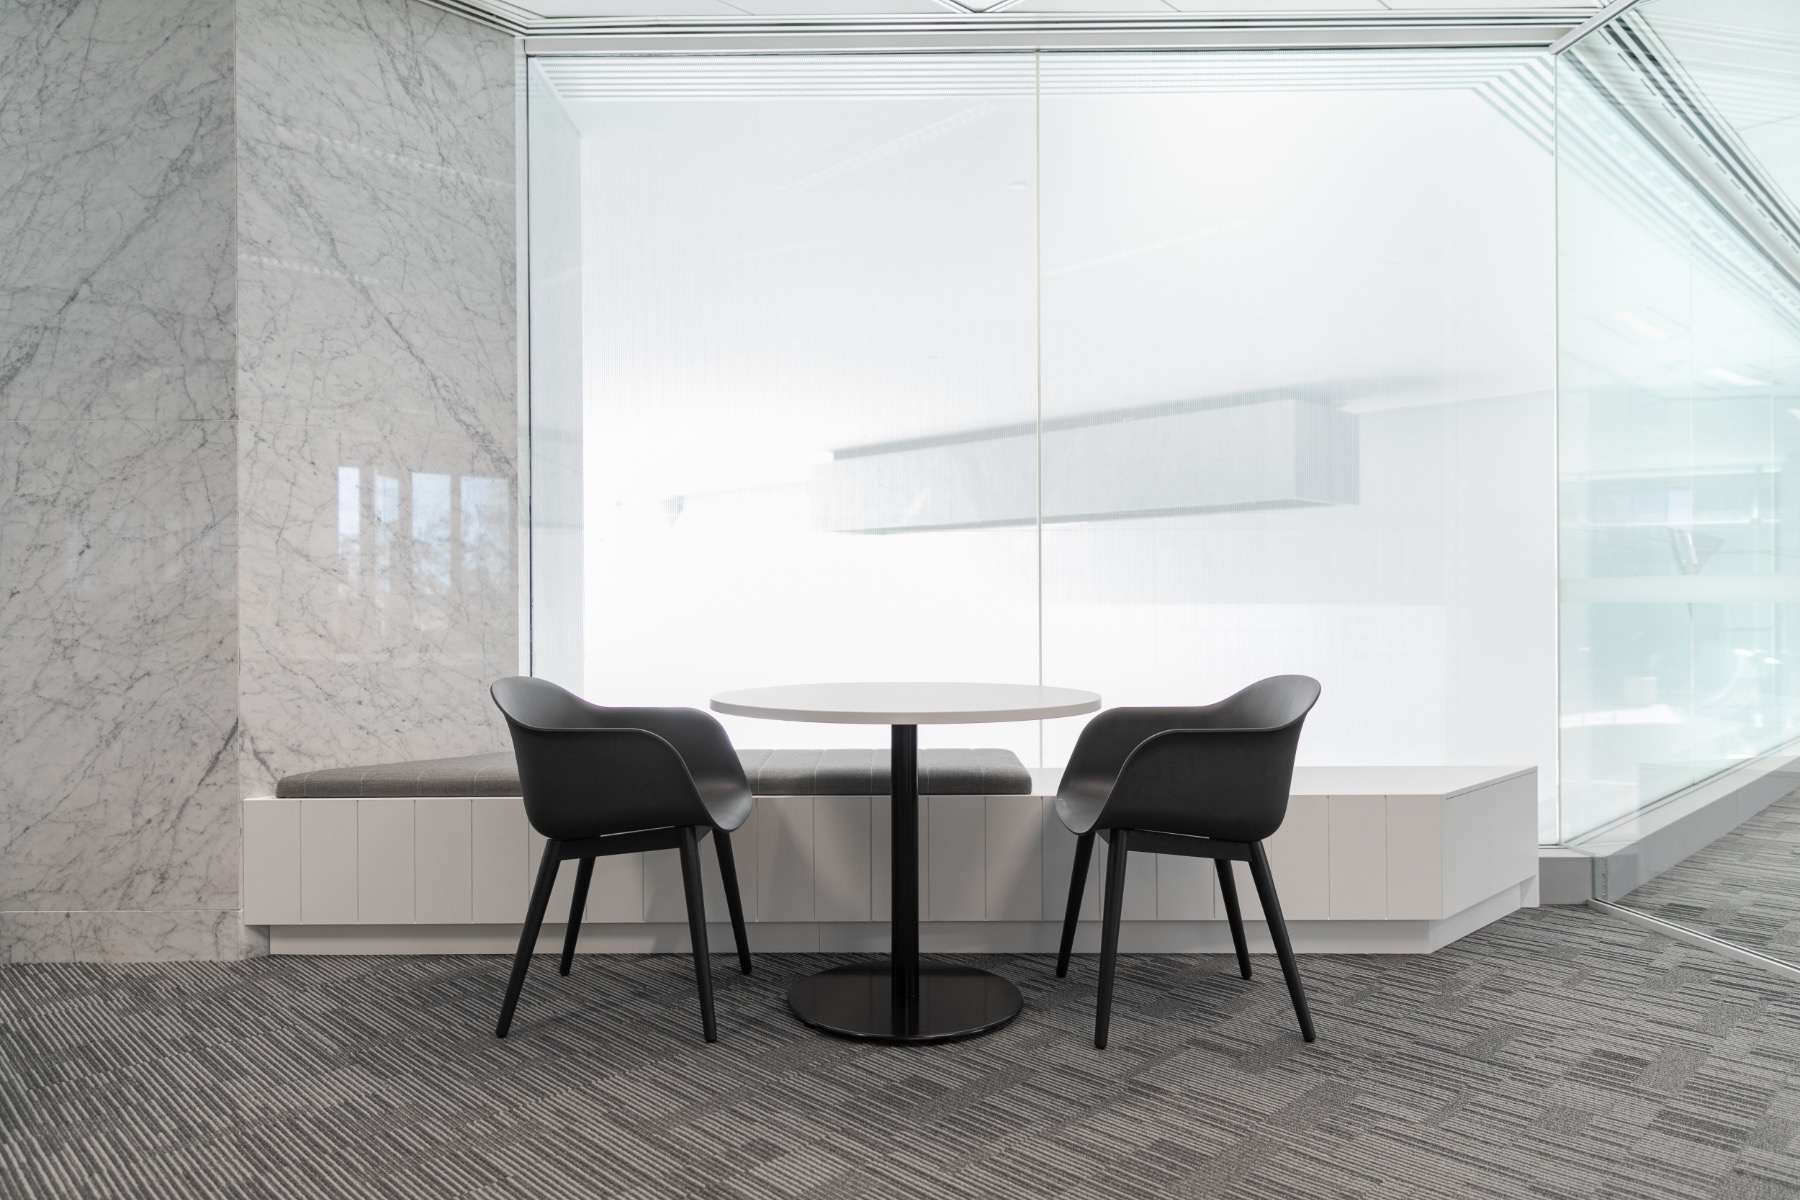 arup-perth-office-8